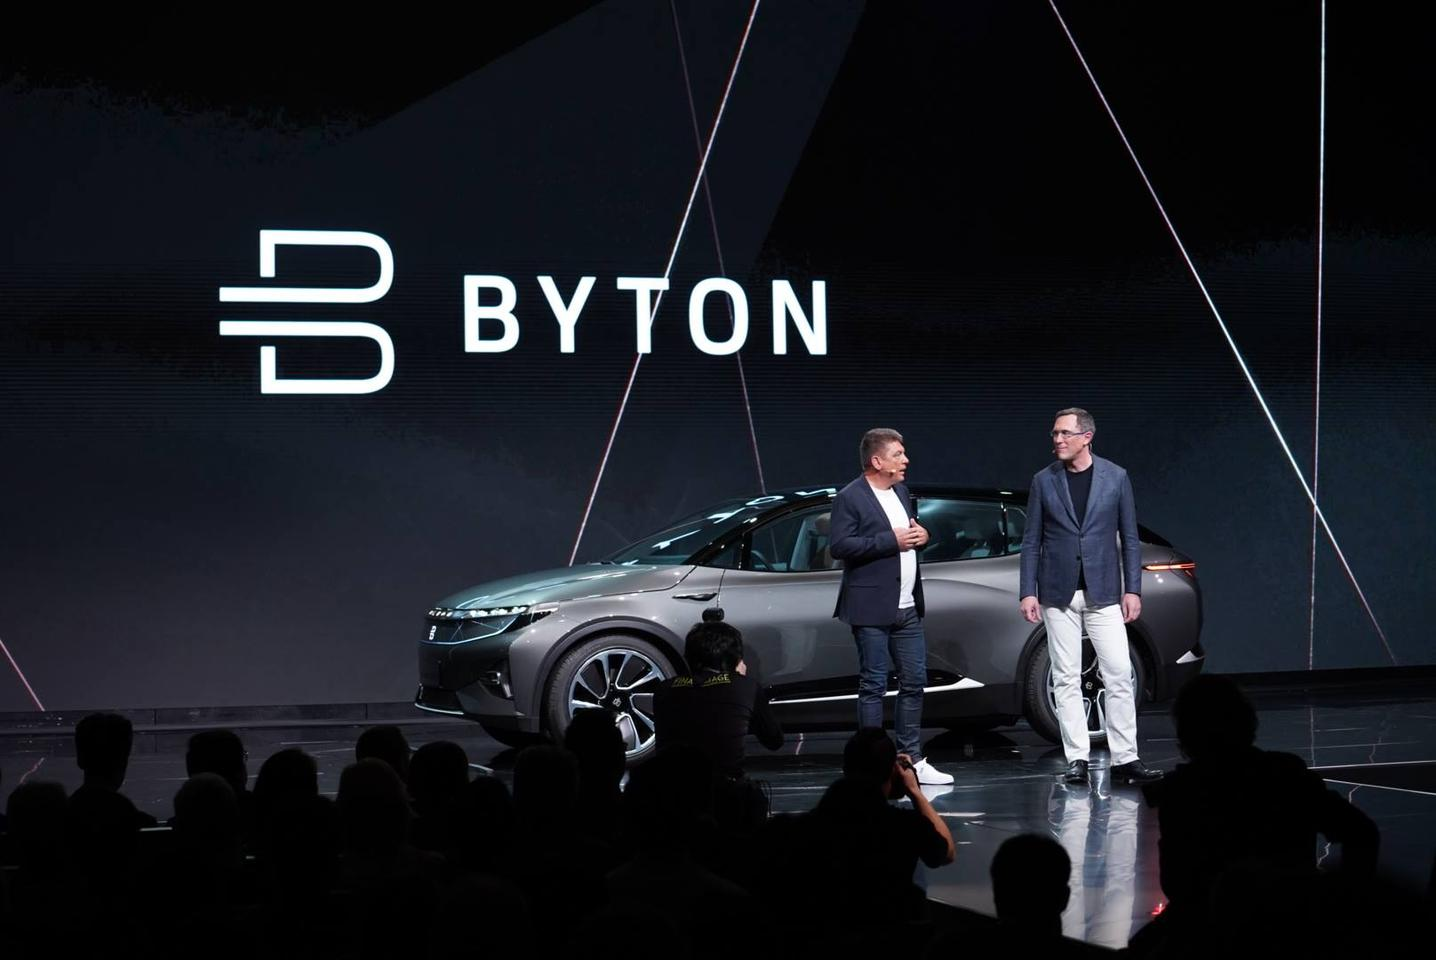 Byton reveals its concept at the 2018 Consumer Electronics Show